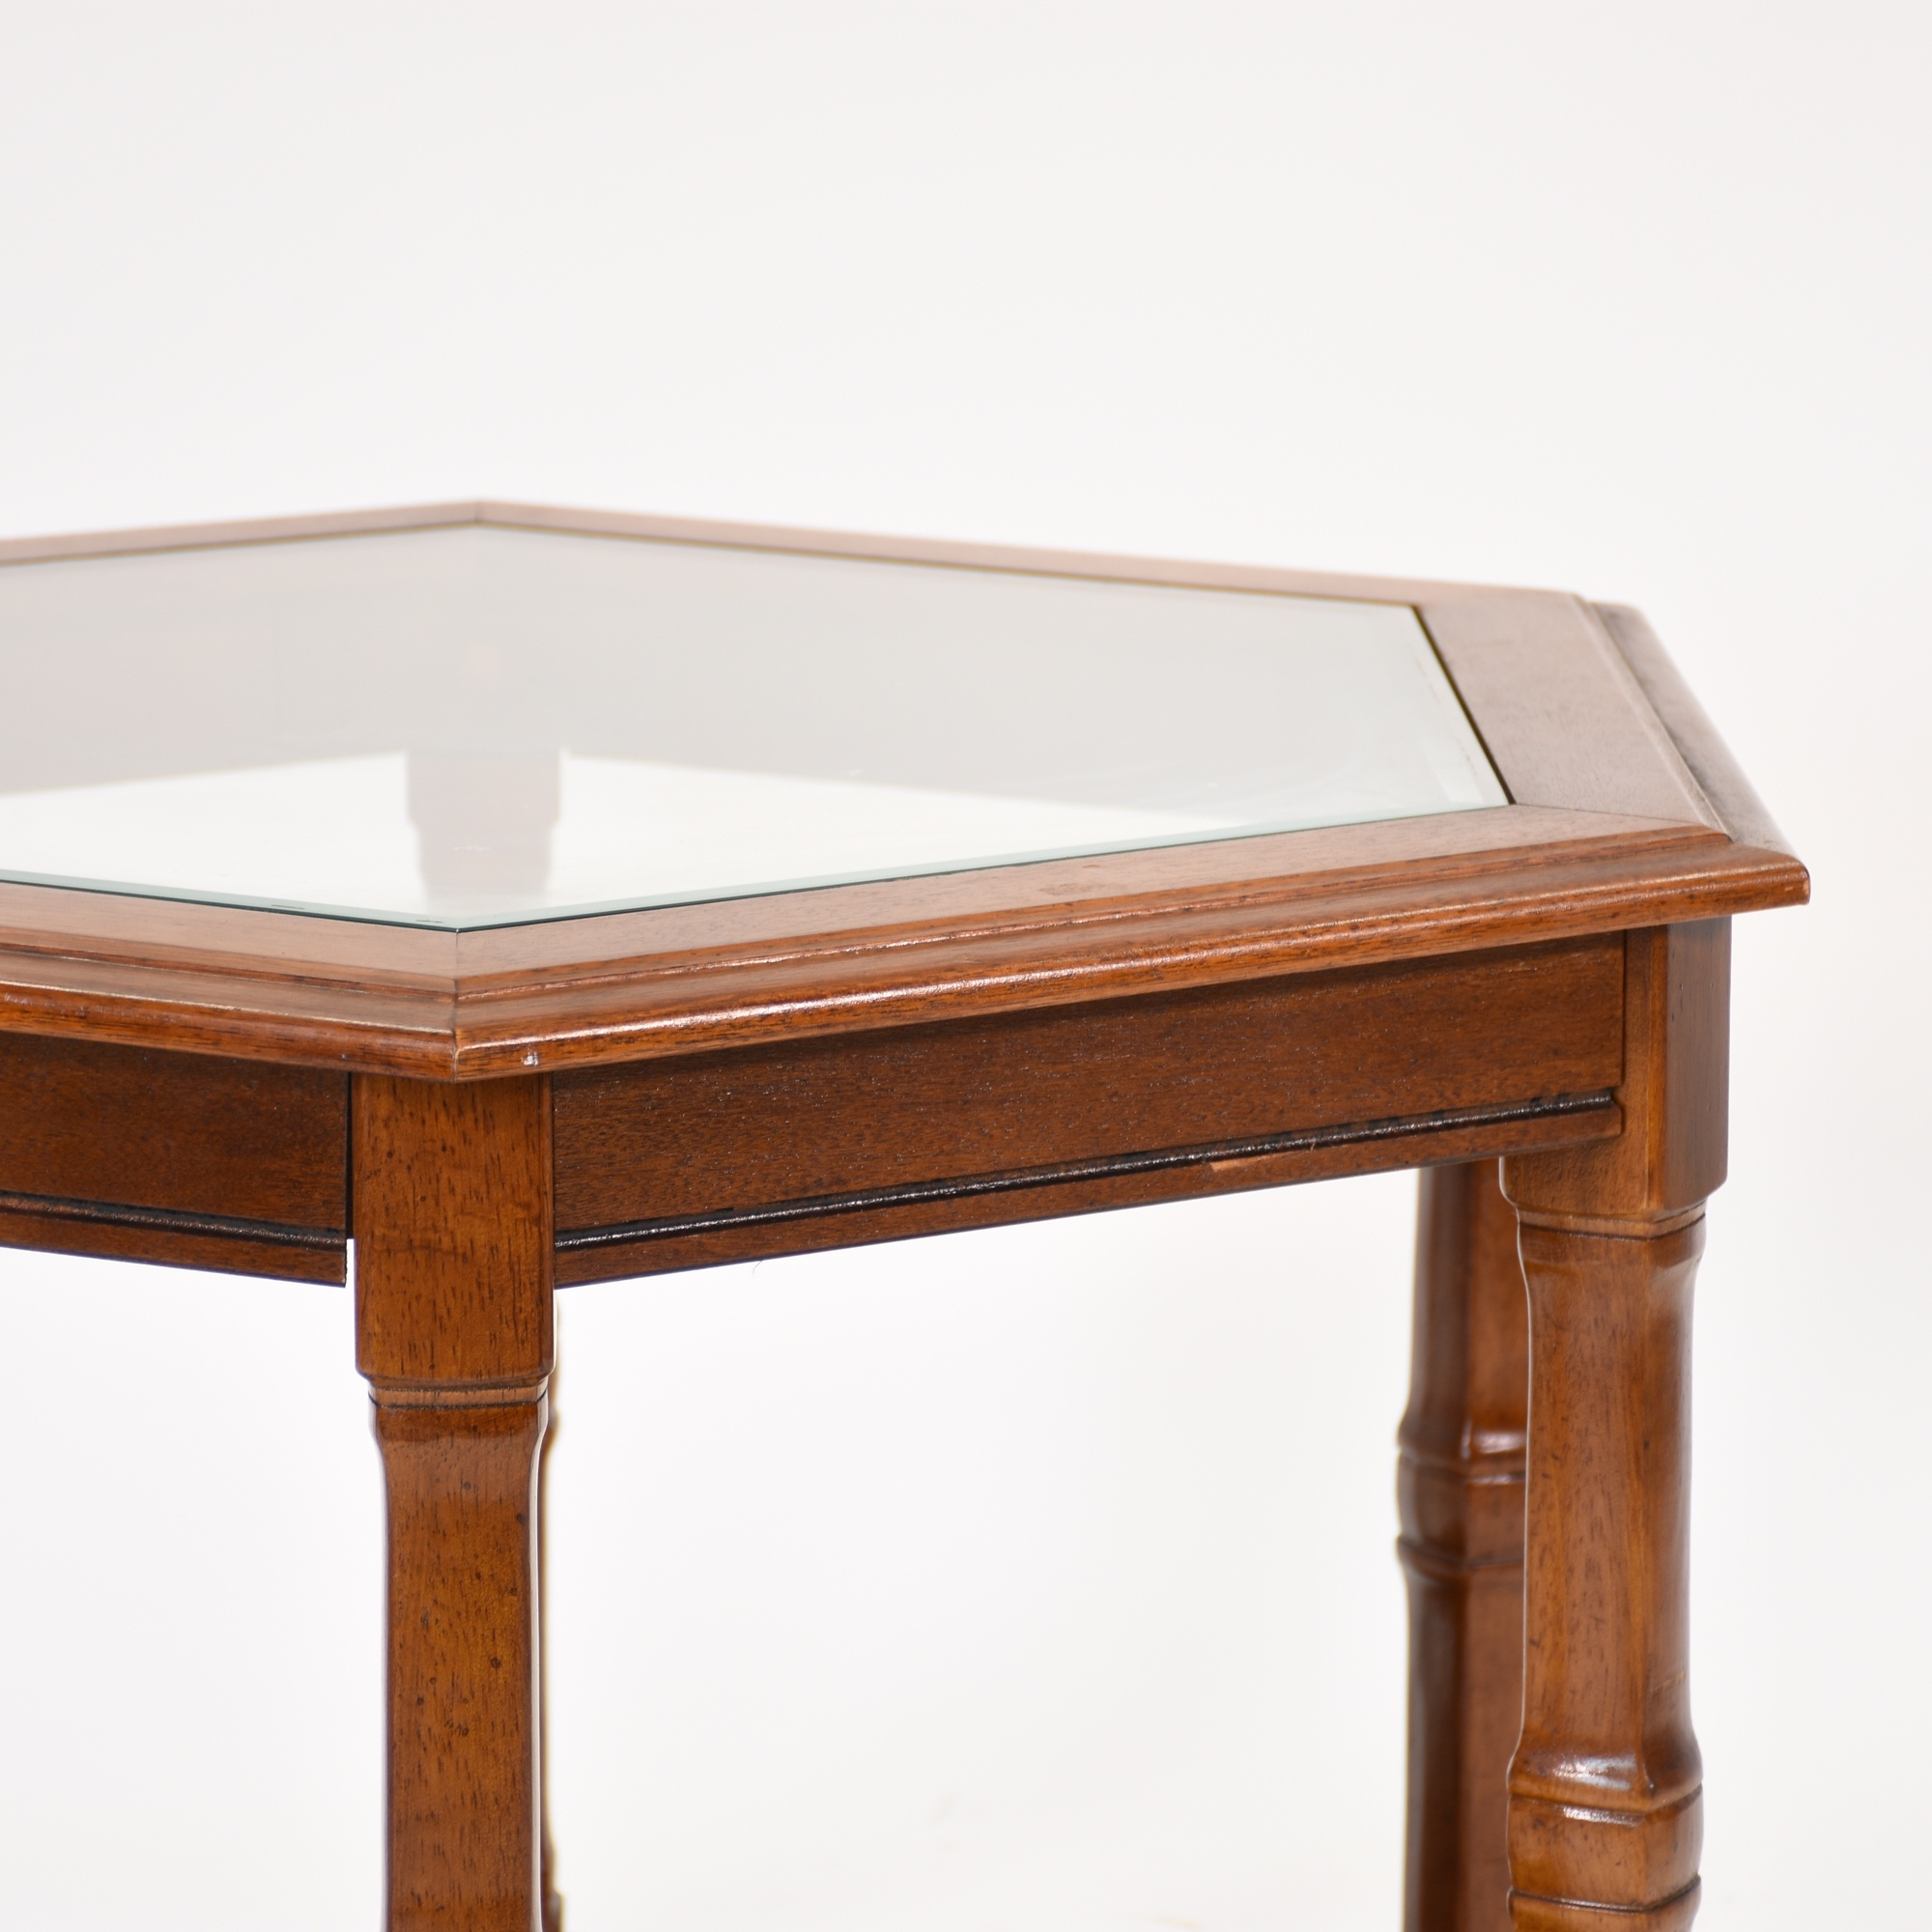 Glass Wooden Side Tables: Hexagon Wood Side Table W/ Glass And Rattan